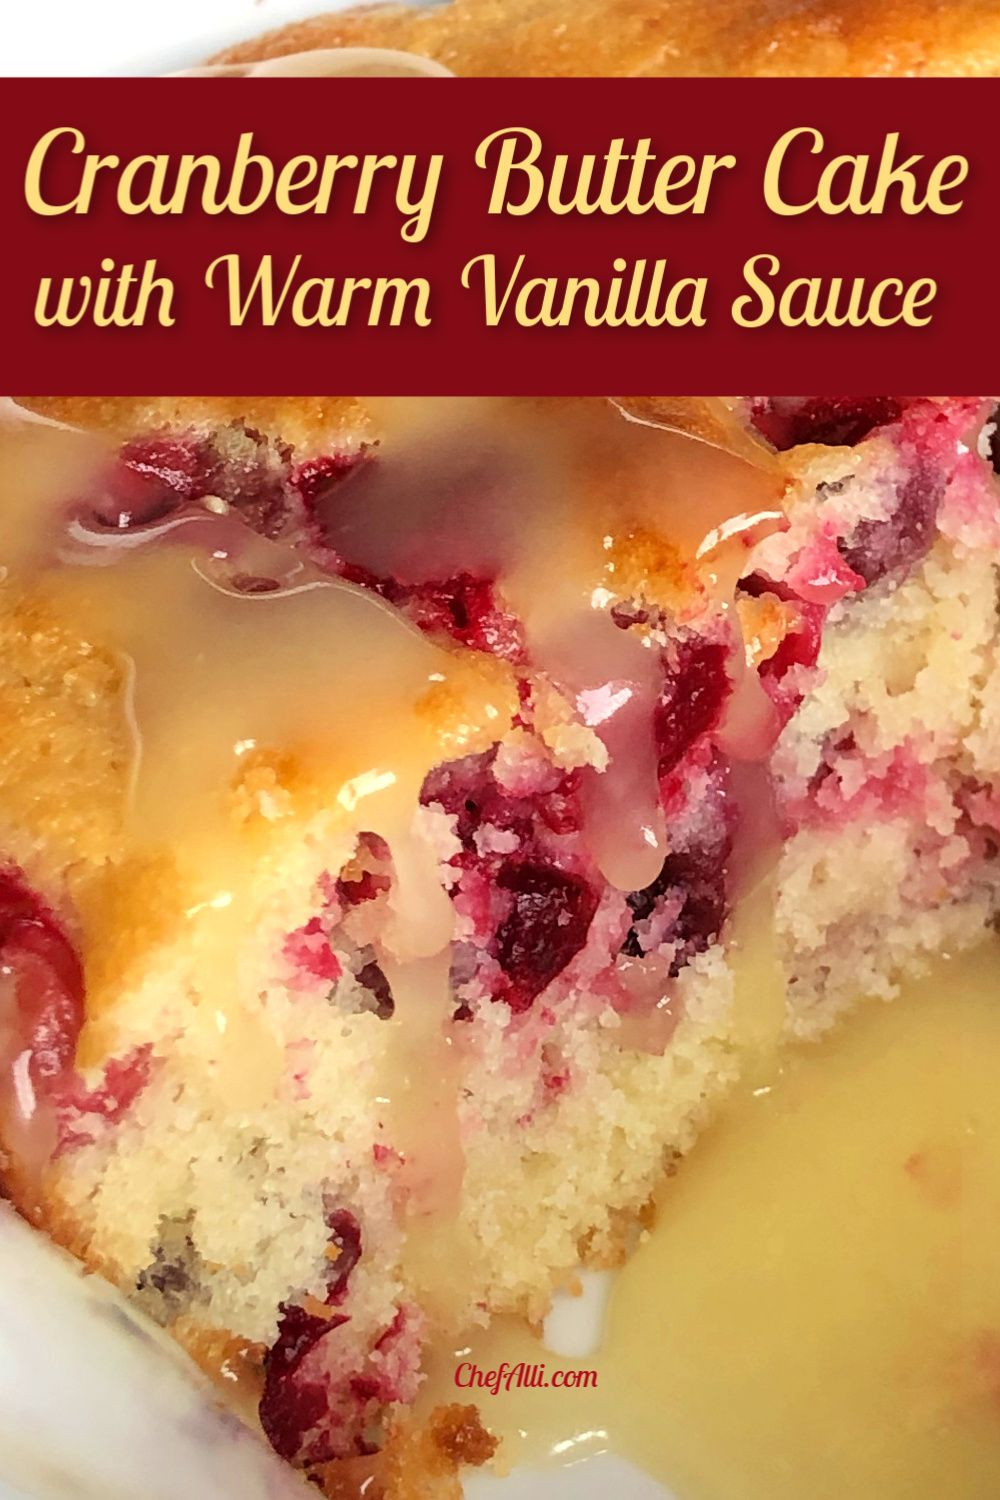 Cranberry Butter Cake with Warm Vanilla Sauce